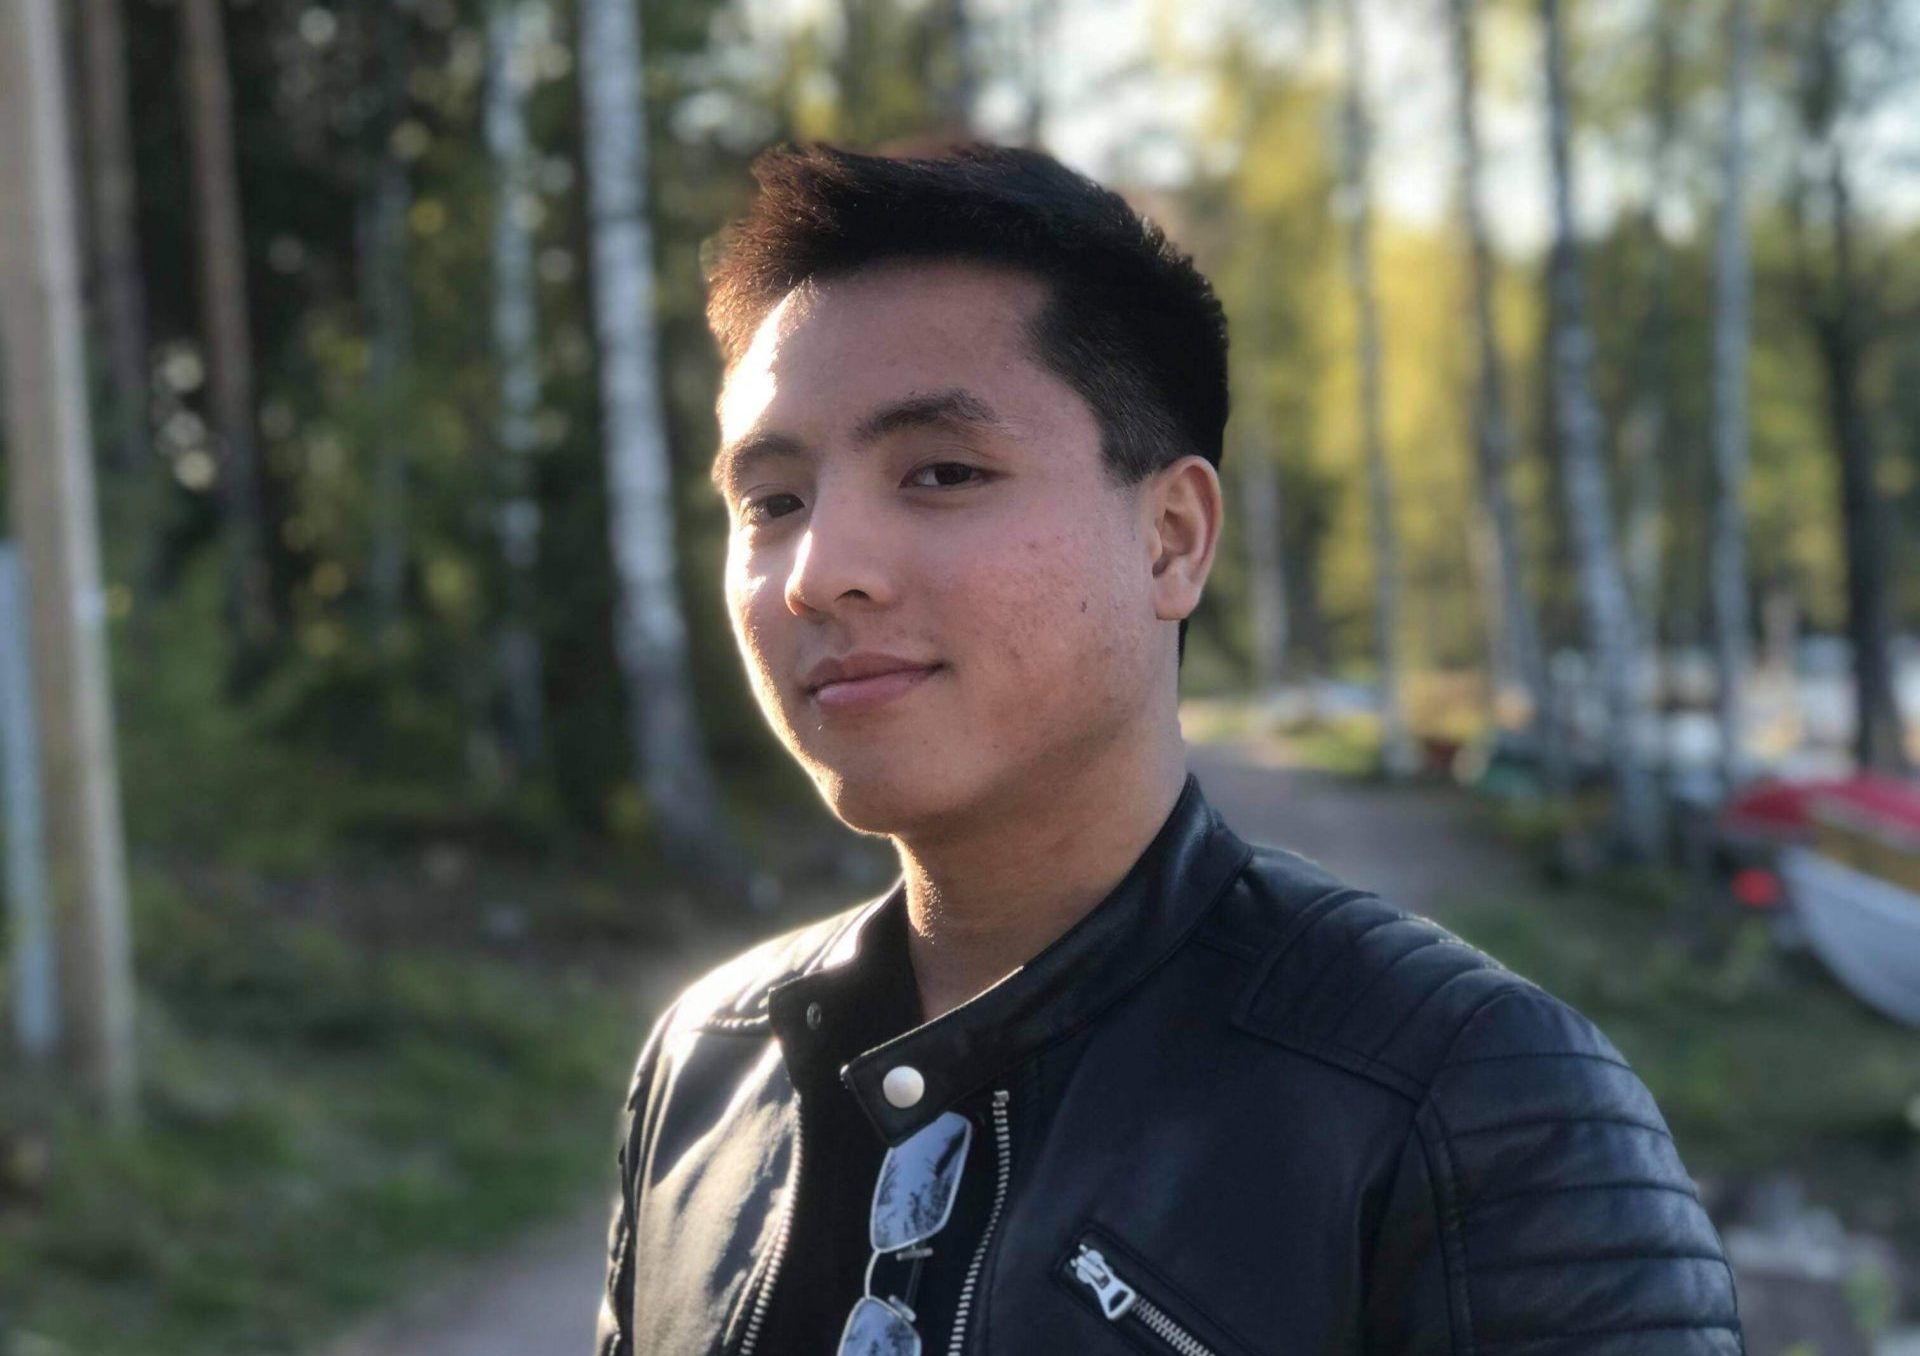 Vietnamese Student in Finland: An Ambitious Adventure